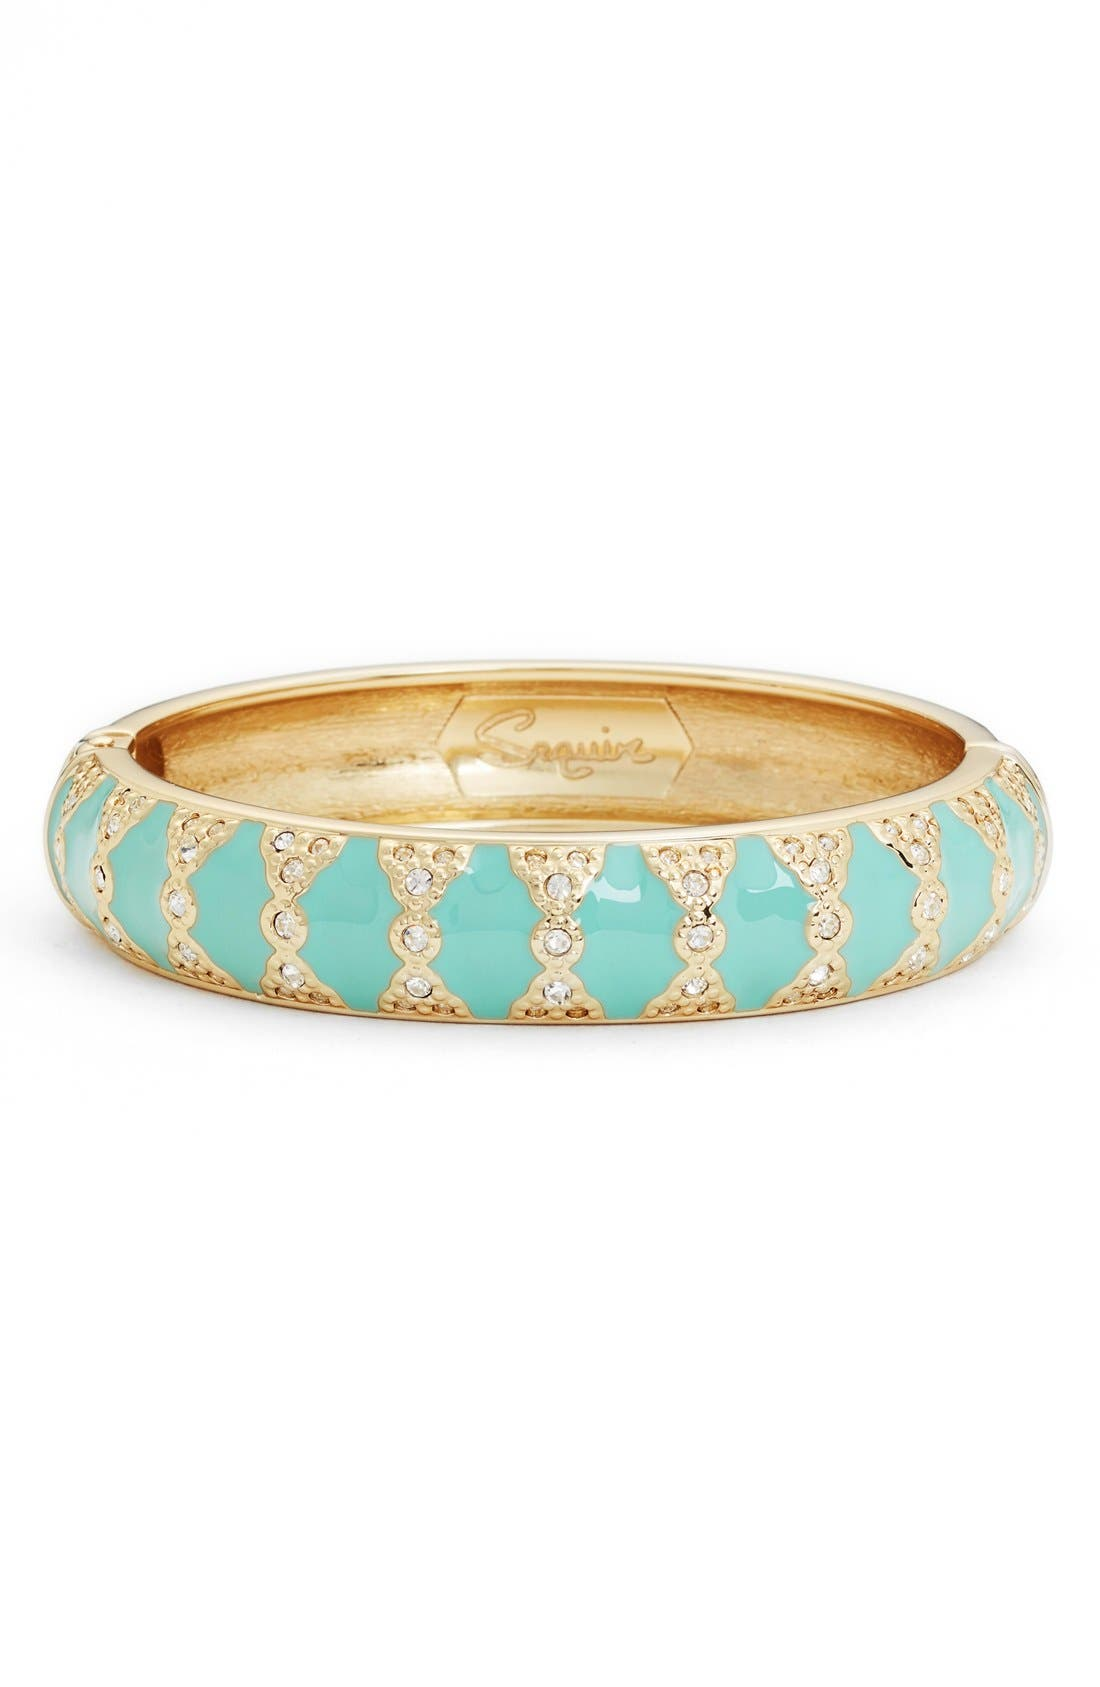 Sequin Moorish Embellished Bangle